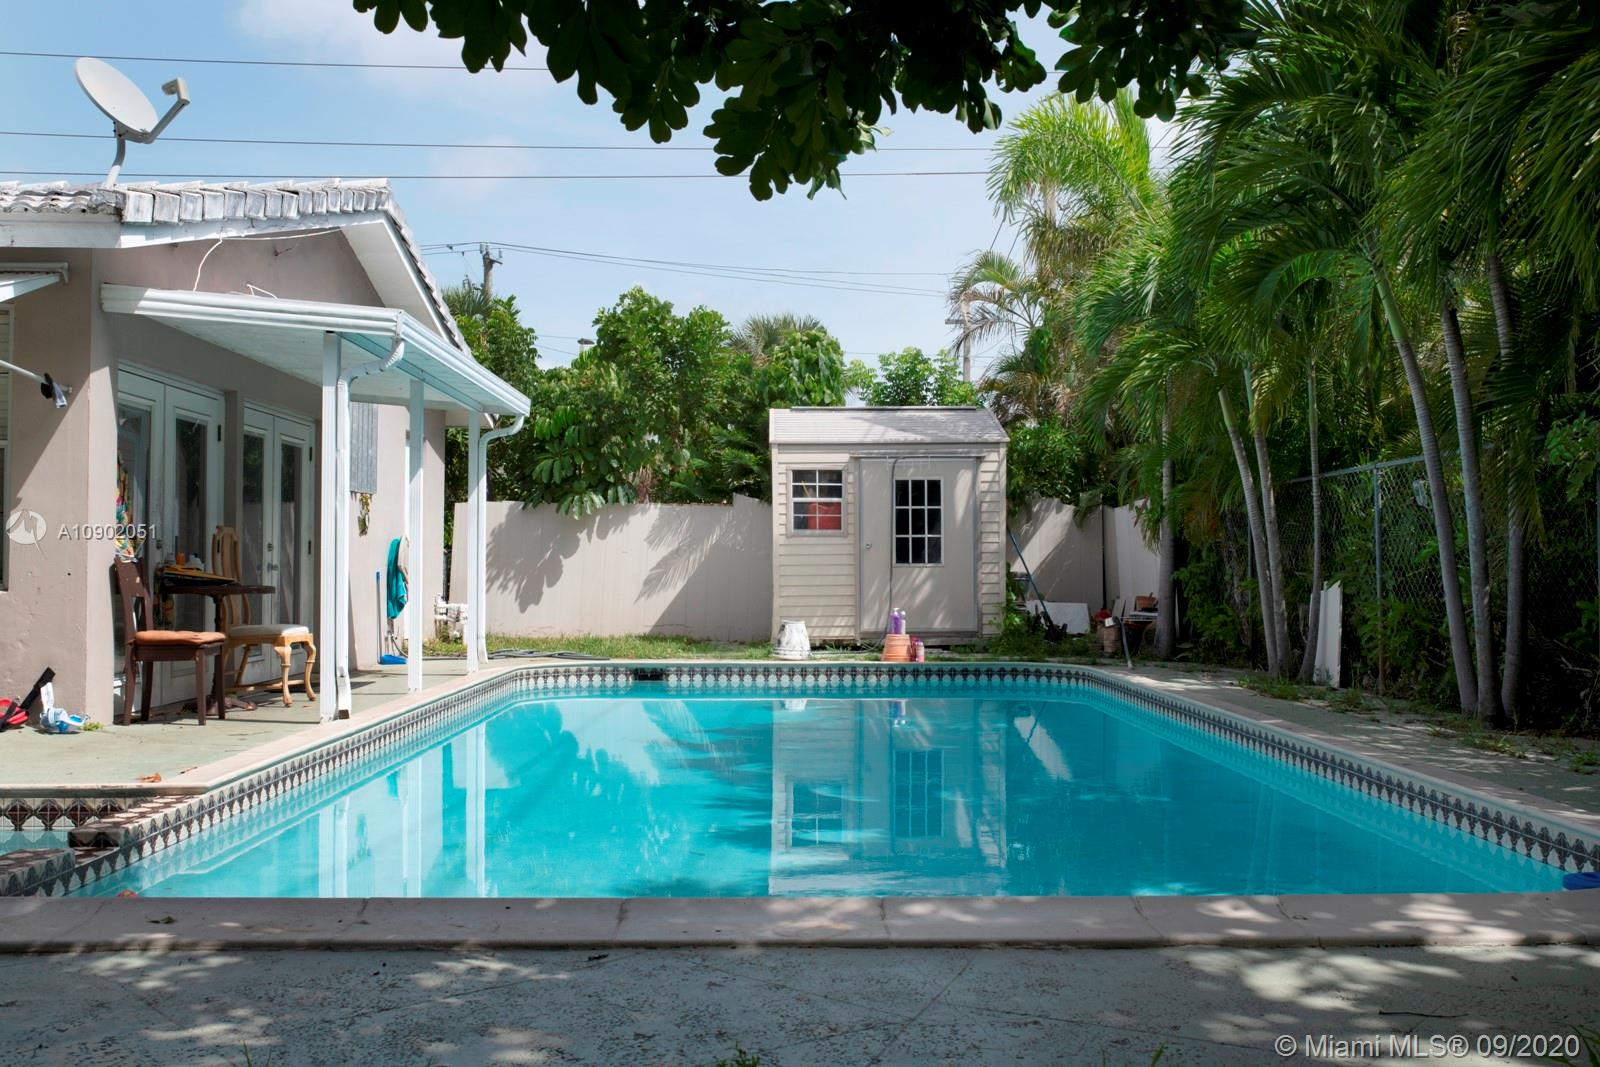 NICE FAMILY HOME 3BD 2BA . NOW THIS IS 2BD 1BA AND 1BD / 1BA W/ SEPARATE ENTRANCE. LARGE CORNER LOT 7,739 SQ WITH BELOW GROUND PRIVATE POOL. TENANT IN PLACE. CORAL HEIGHTS HIS ONE OF THE HOTTEST NEIGHBORHOODS IN OAKLAND PARK REAL ESTATE. NEAR THE BEACHES AND STEPS TO TRENDY NEW SHOPPES / URBAN ARTS DISTRICT/ GROCERIES/ DINING & ENTERTAINMENT.